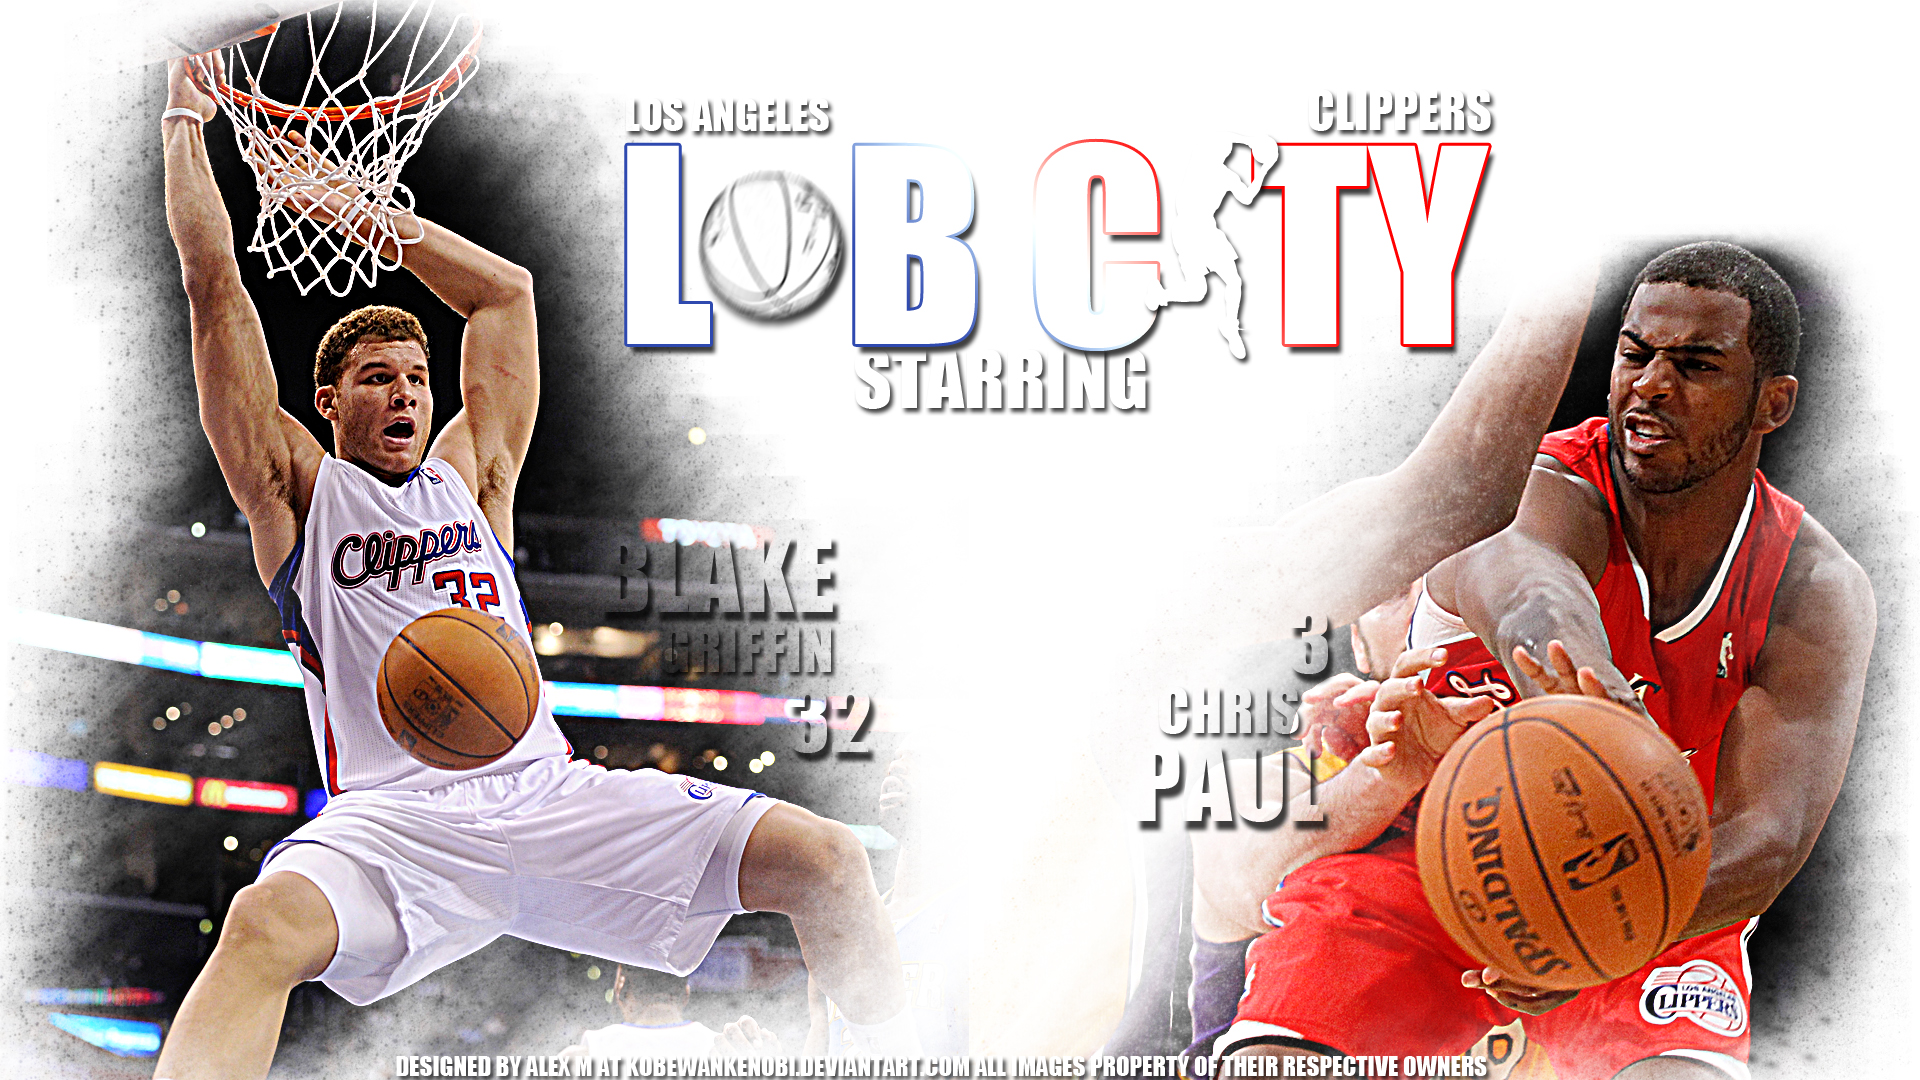 Blake griffin and chris paul friendship